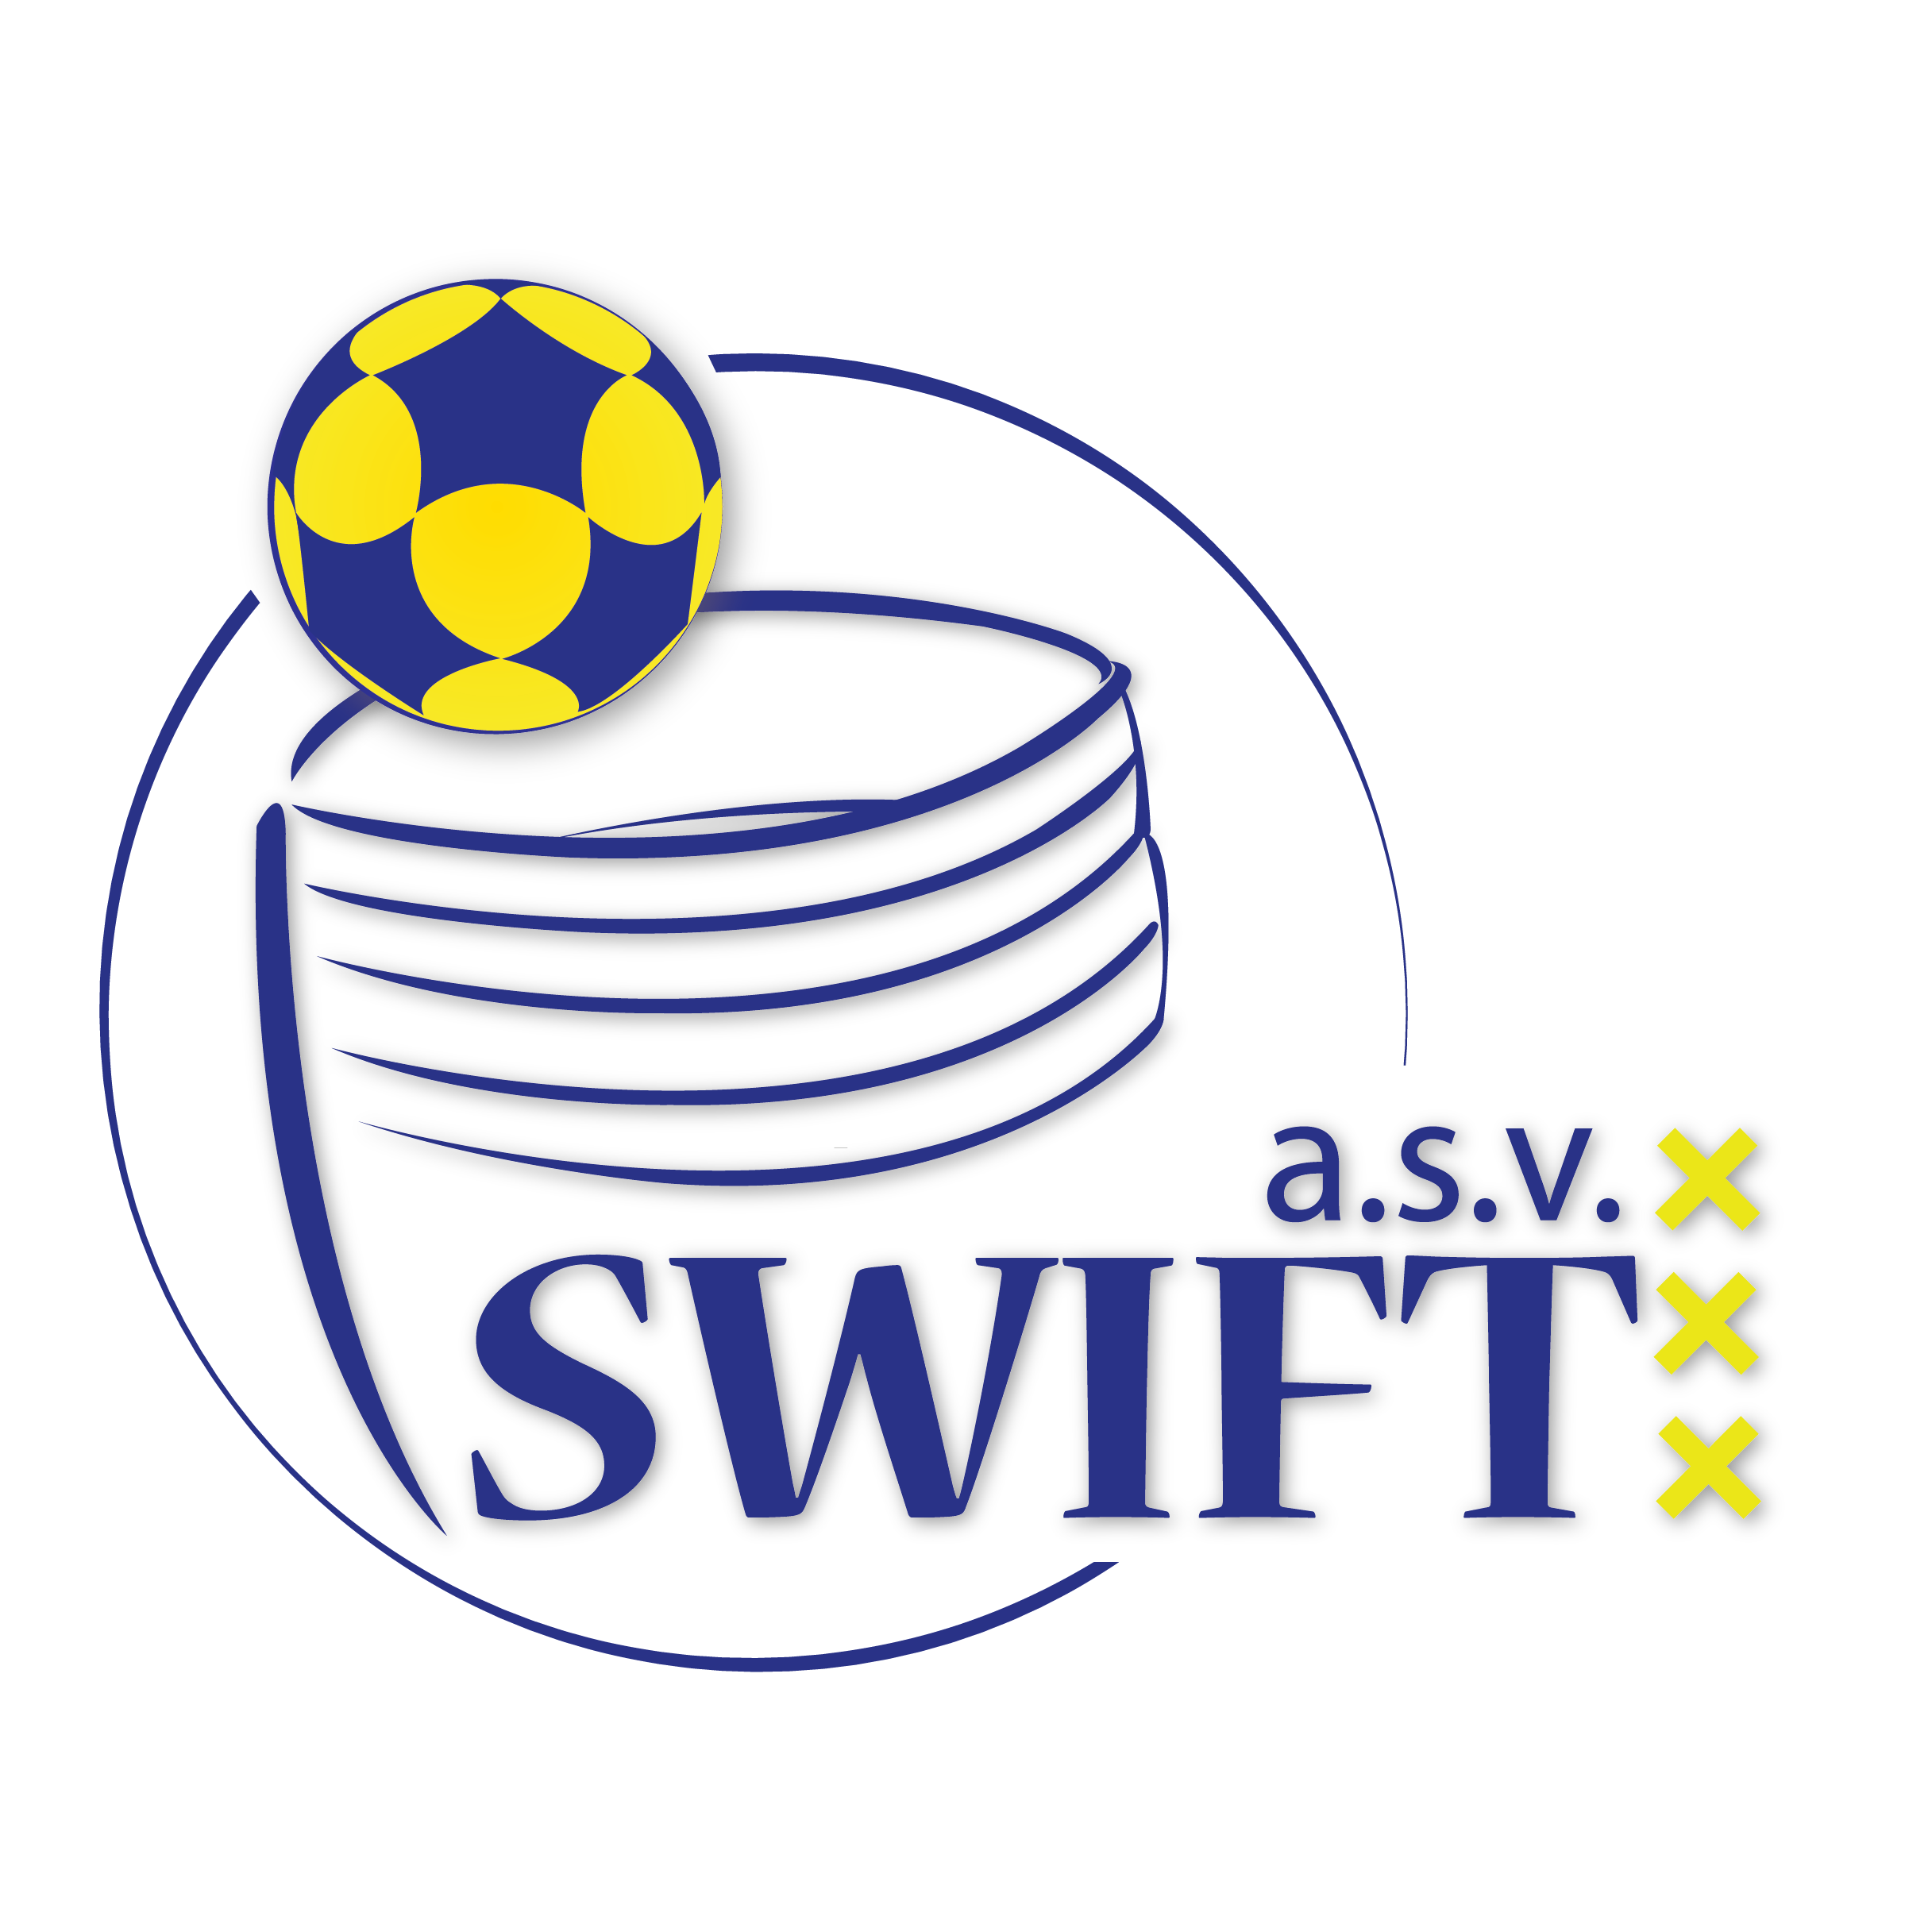 Swift Korfbal